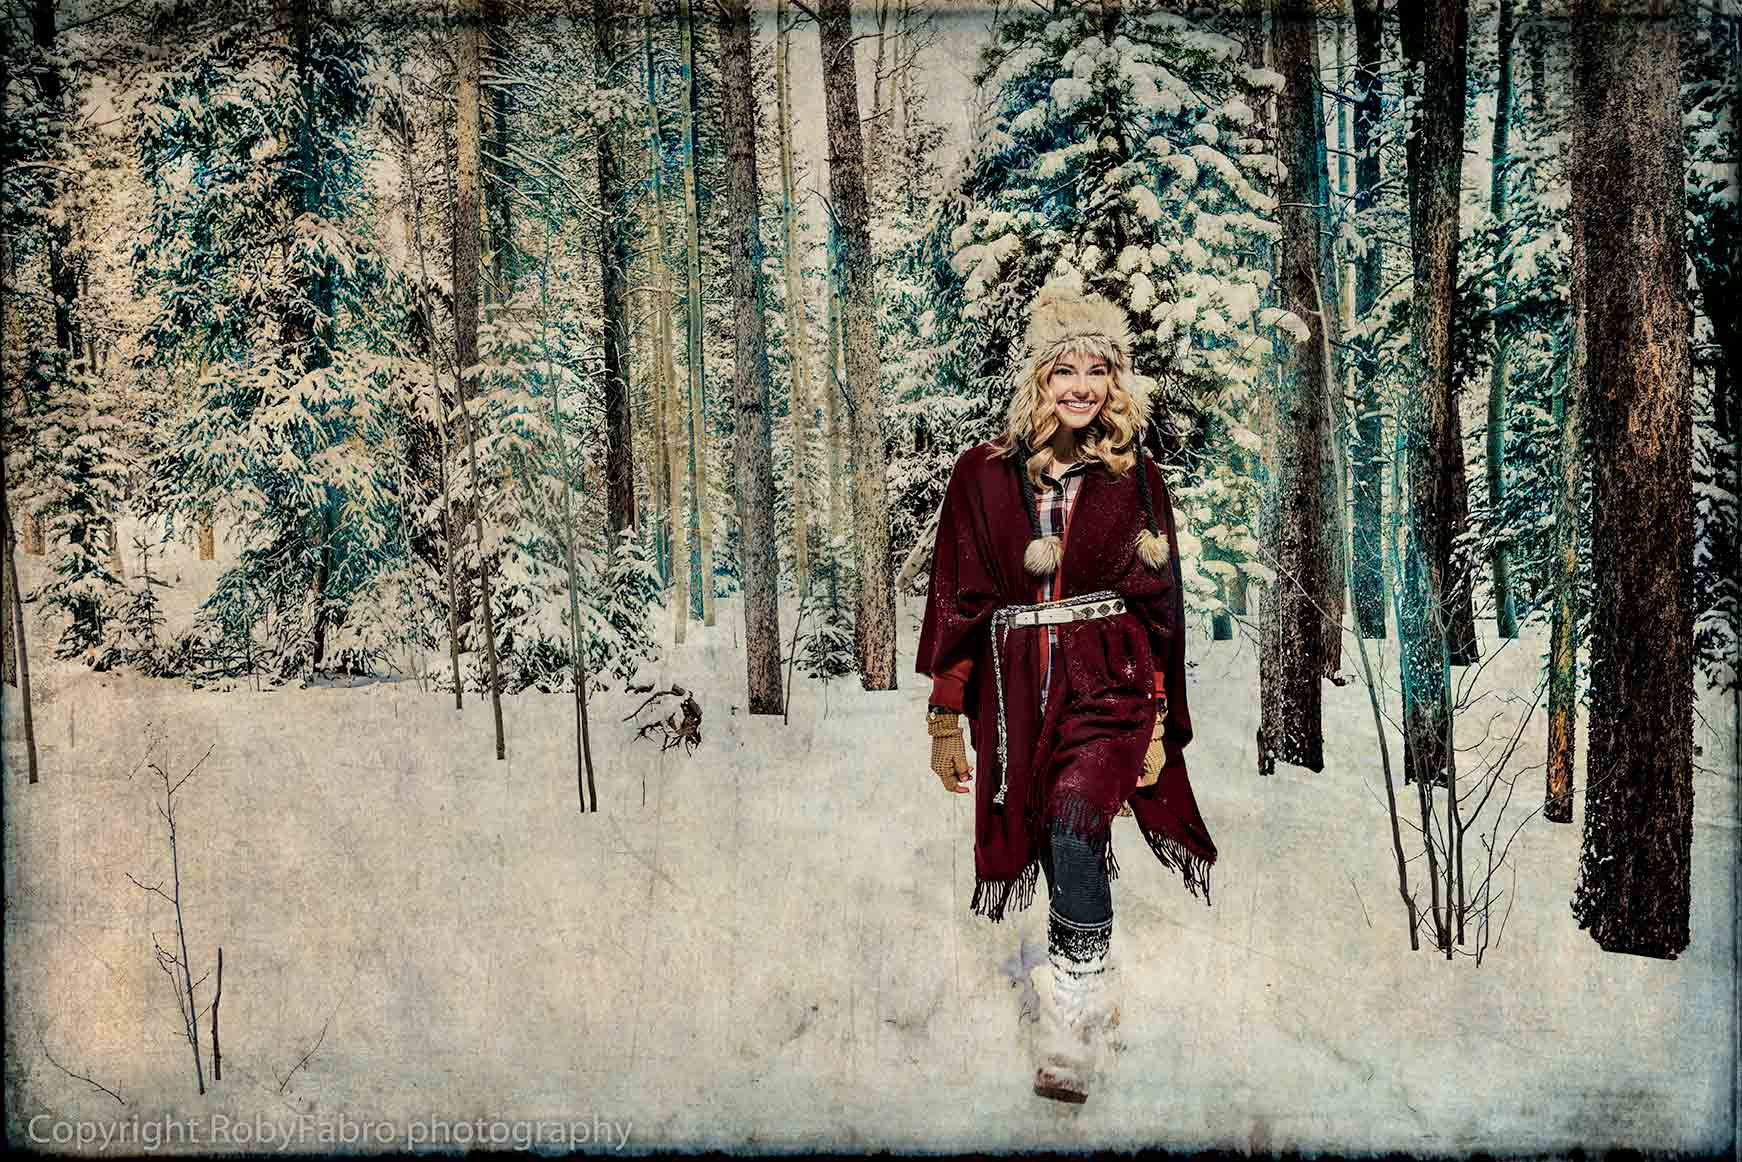 Walking  in the wood. Breckenridge, Colorado.  Lifestyle photography